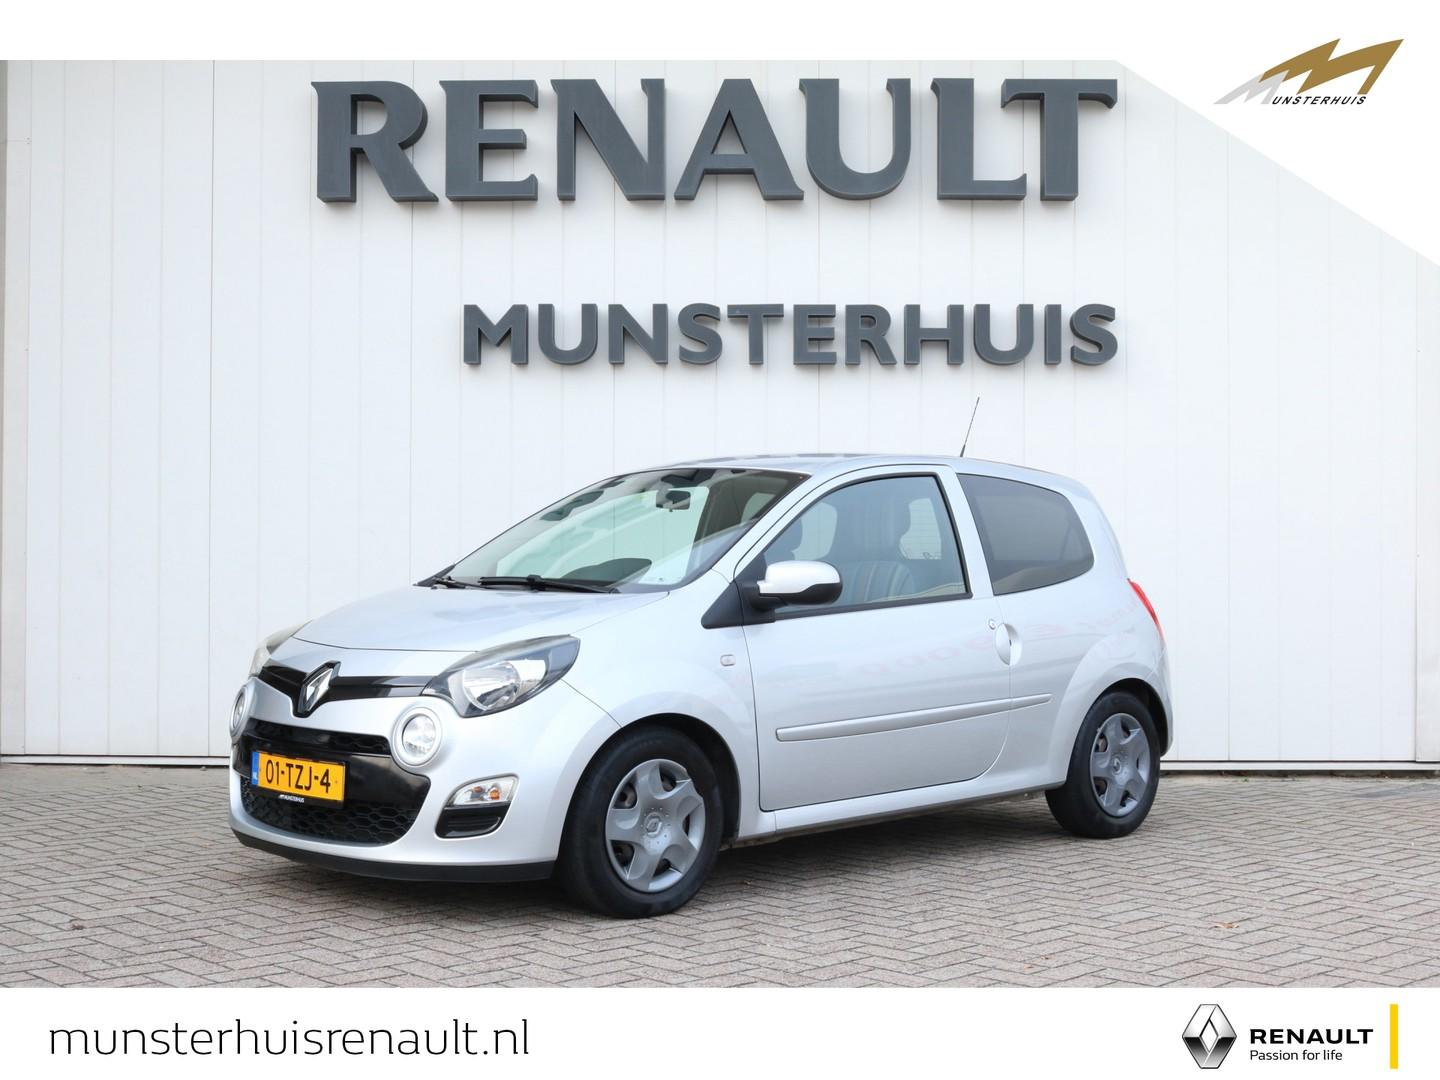 Renault Twingo 1.2 16v 75 collection -airco  - cruise control